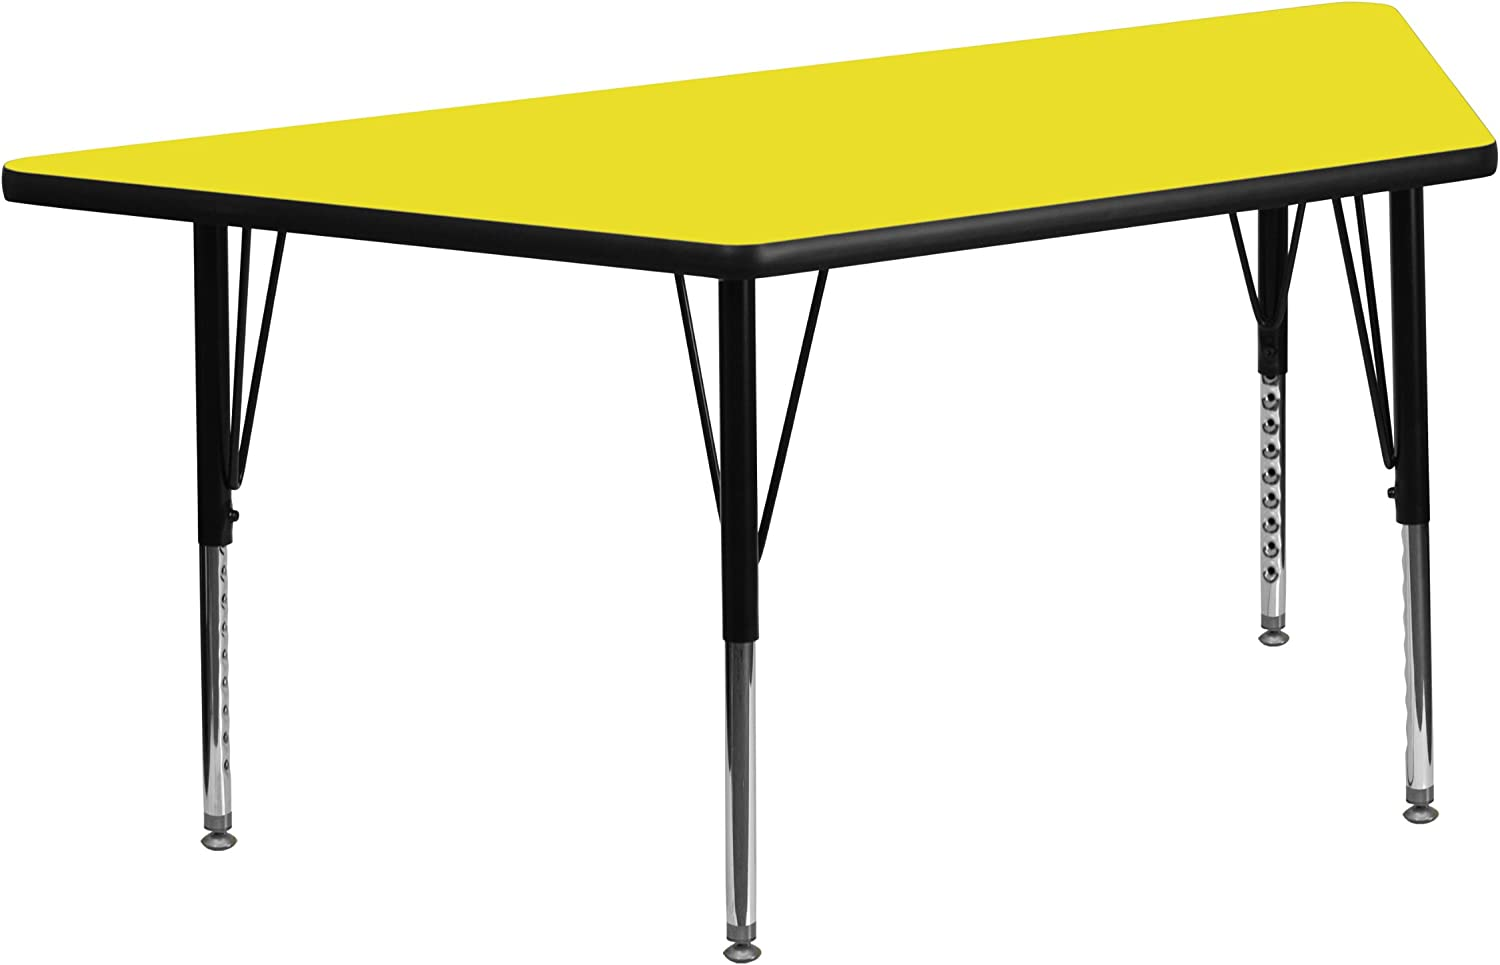 Flash Furniture 25''W x 45''L Trapezoid Yellow HP Laminate Activity Table - Height Adjustable Short Legs